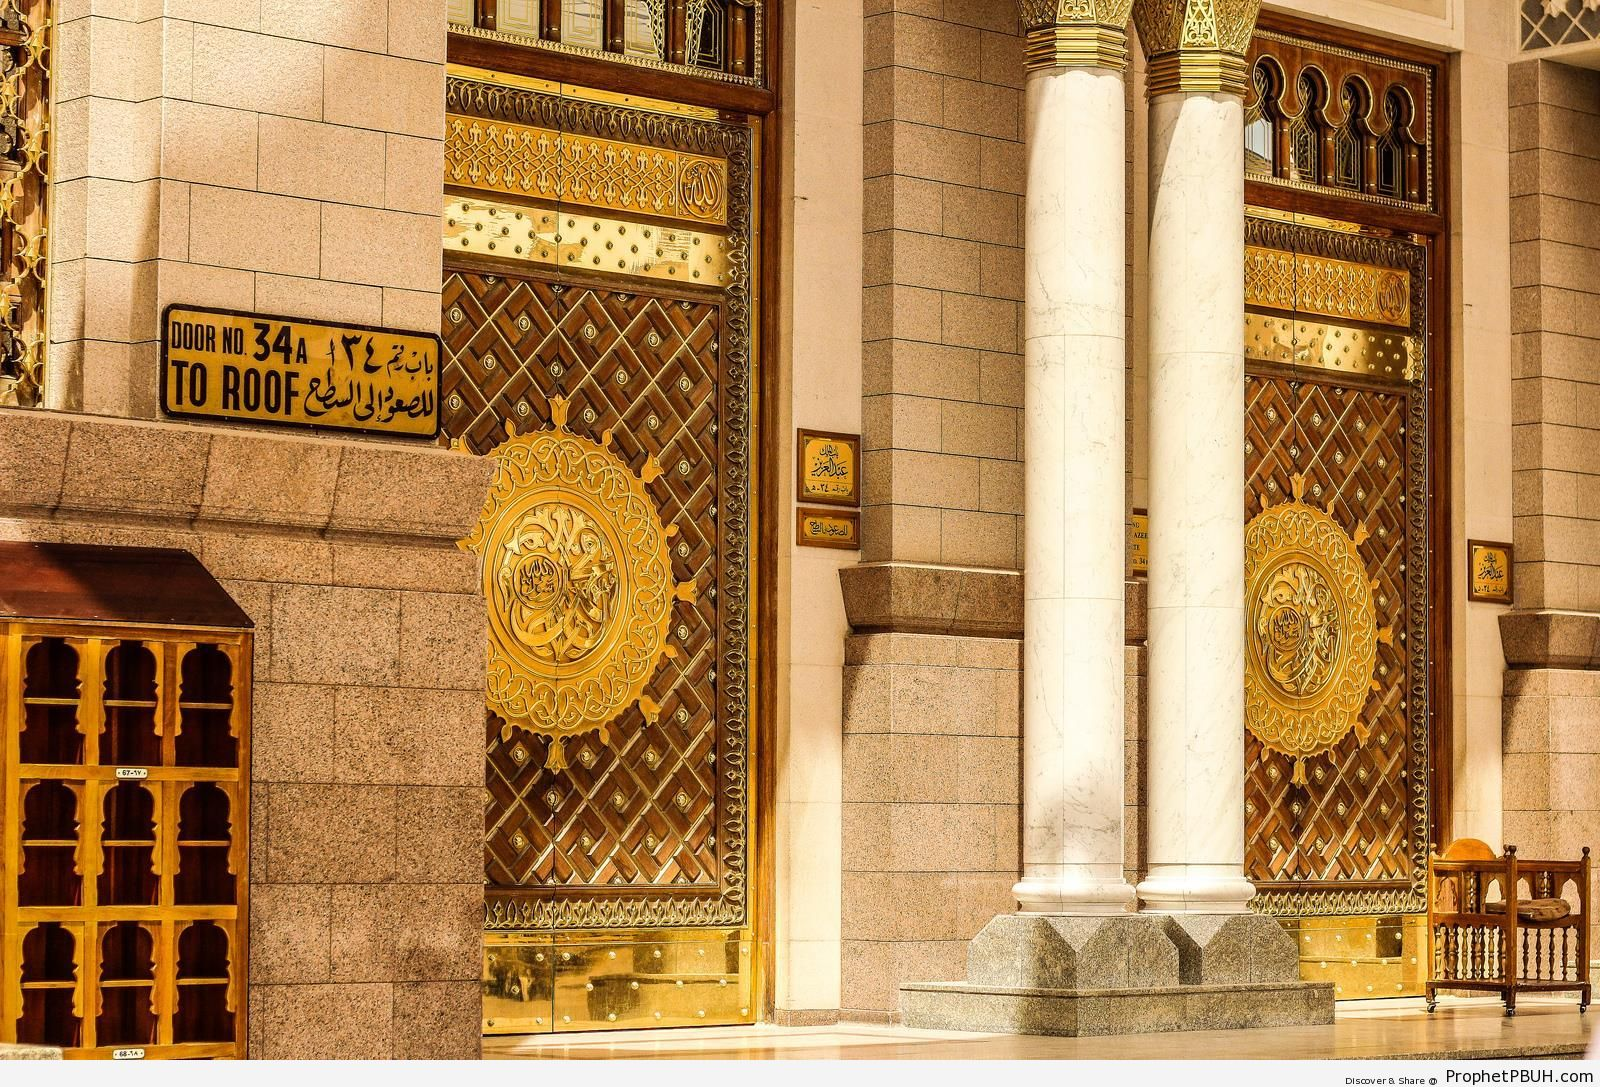 Entrances-at-the-Prophet-s-Mosque-in-Madinah-Saudi-Arabia-Al-Masjid-an-Nabawi-The-Prophets-Mosque-in-Madinah-Saudi-Arabia-Picture